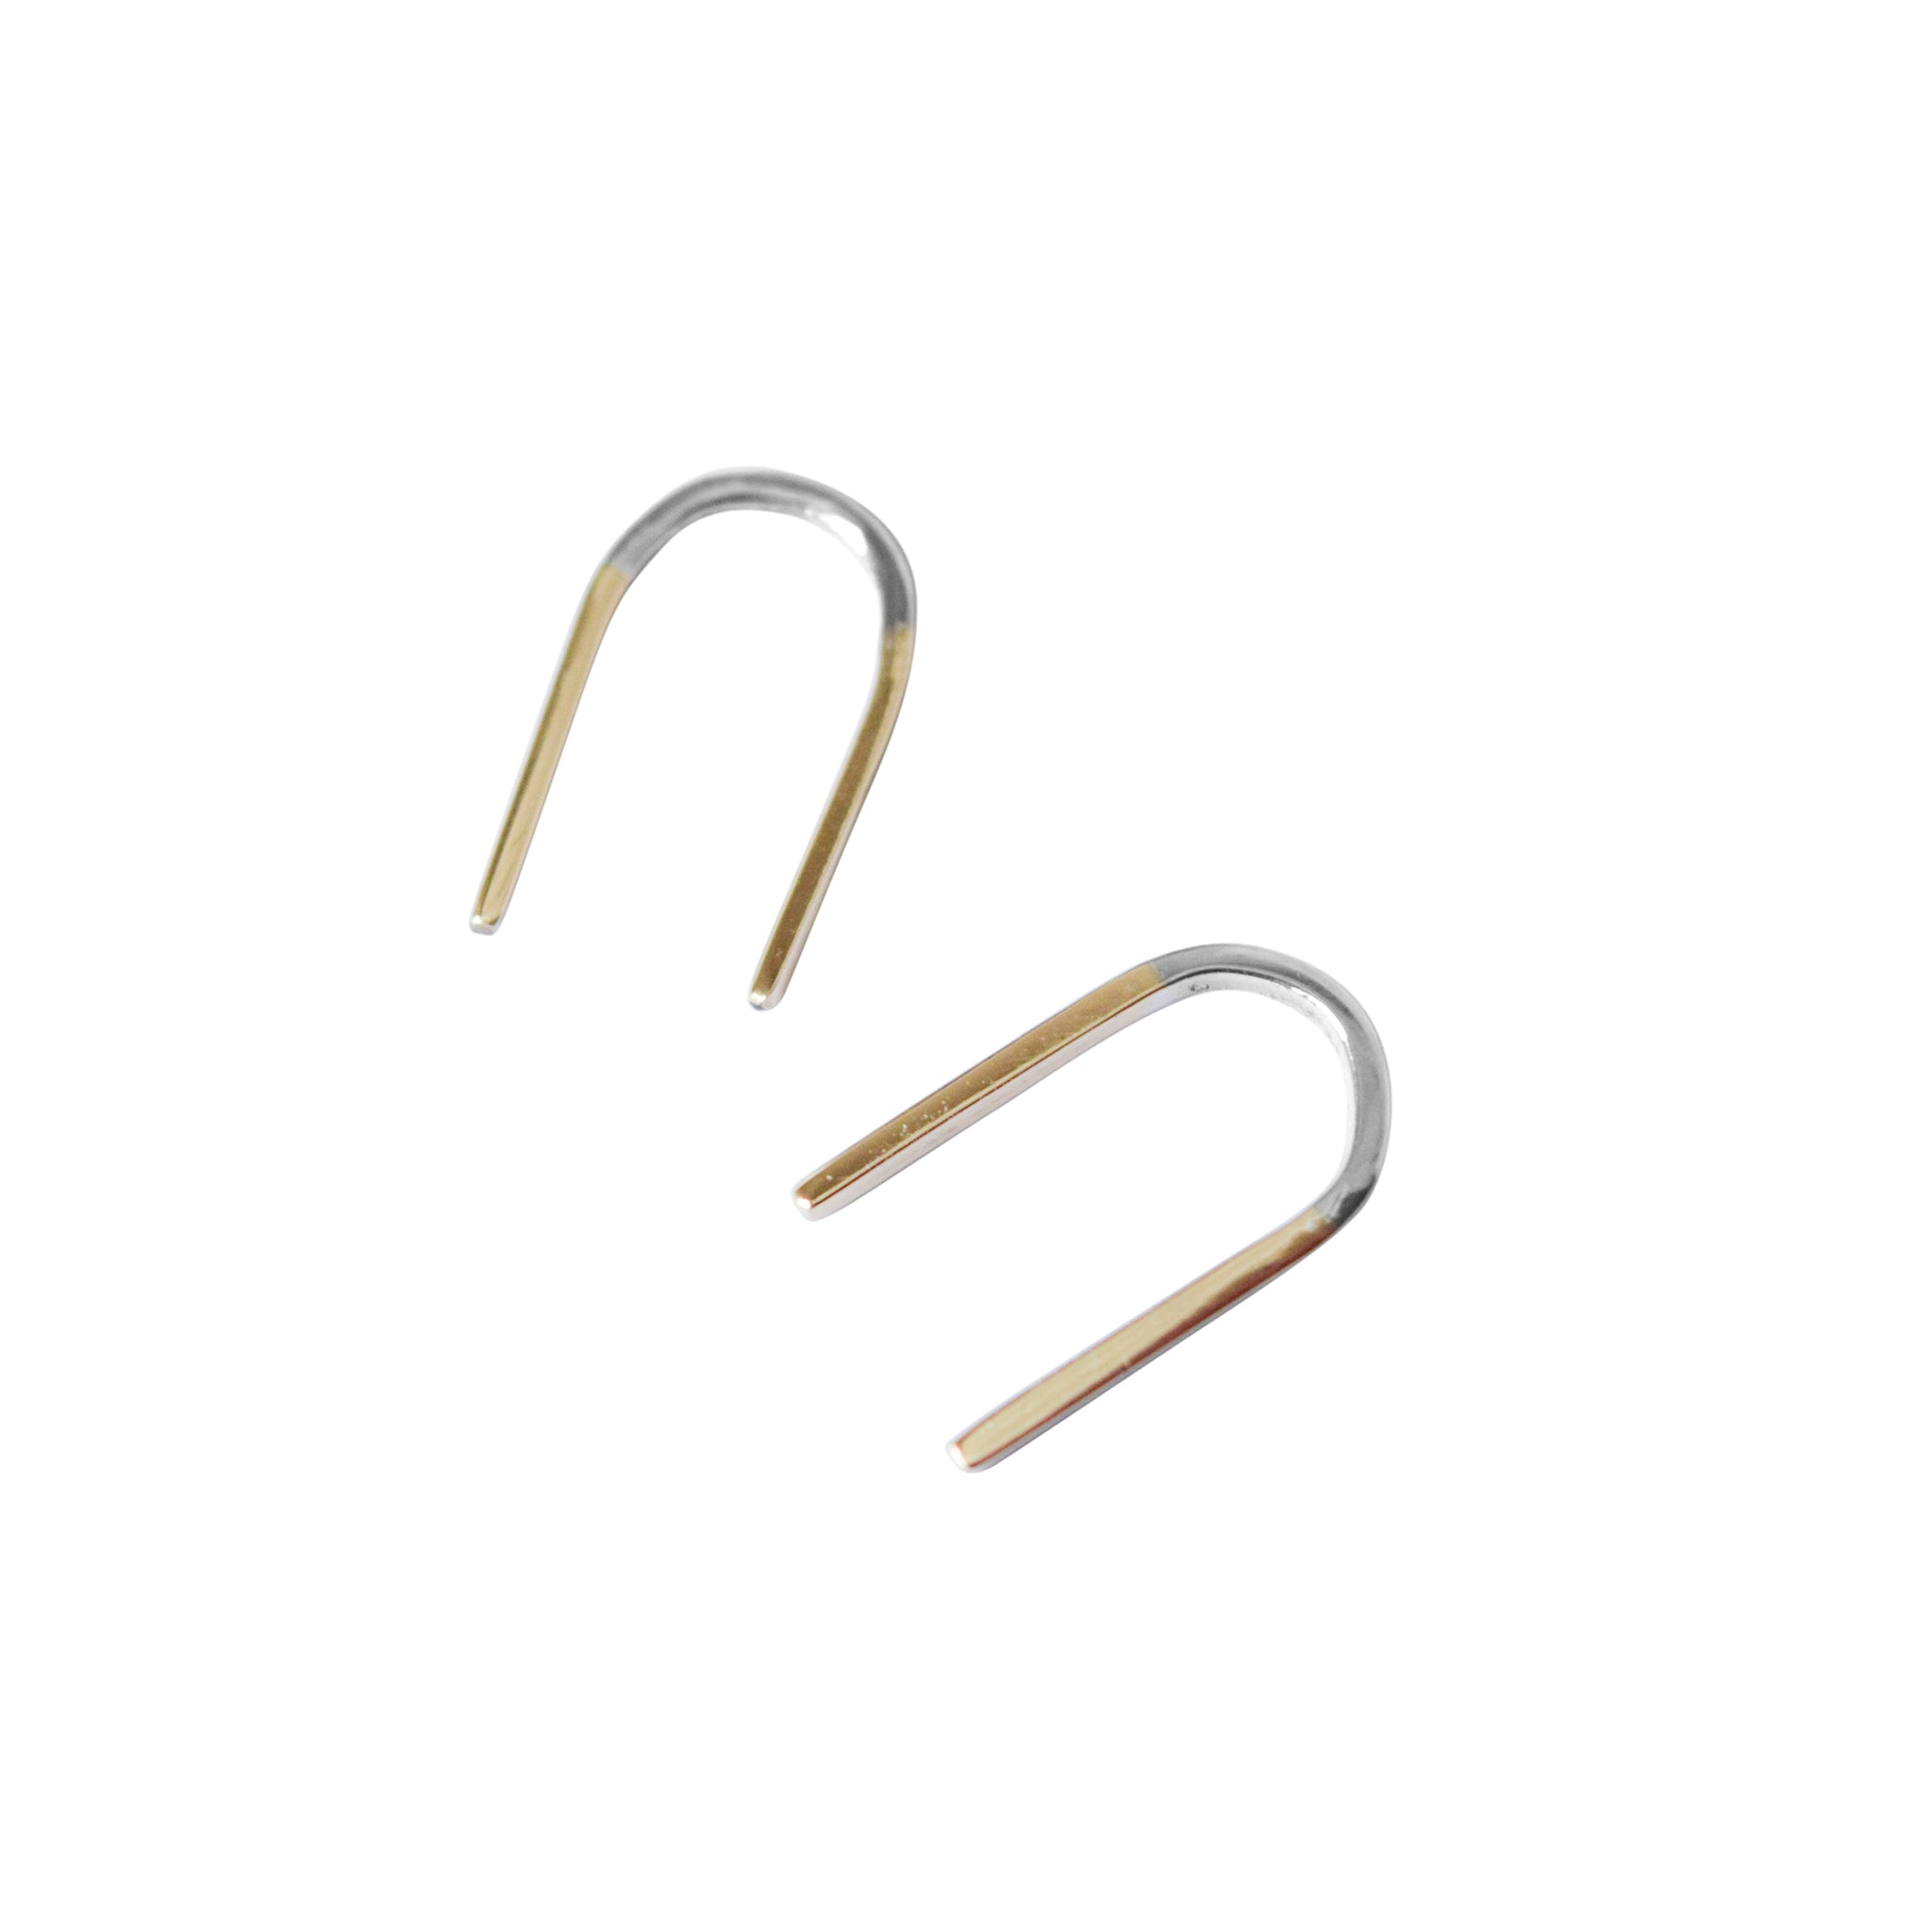 Iman Hook Mixed Metal Earrings - Lissa Bowie